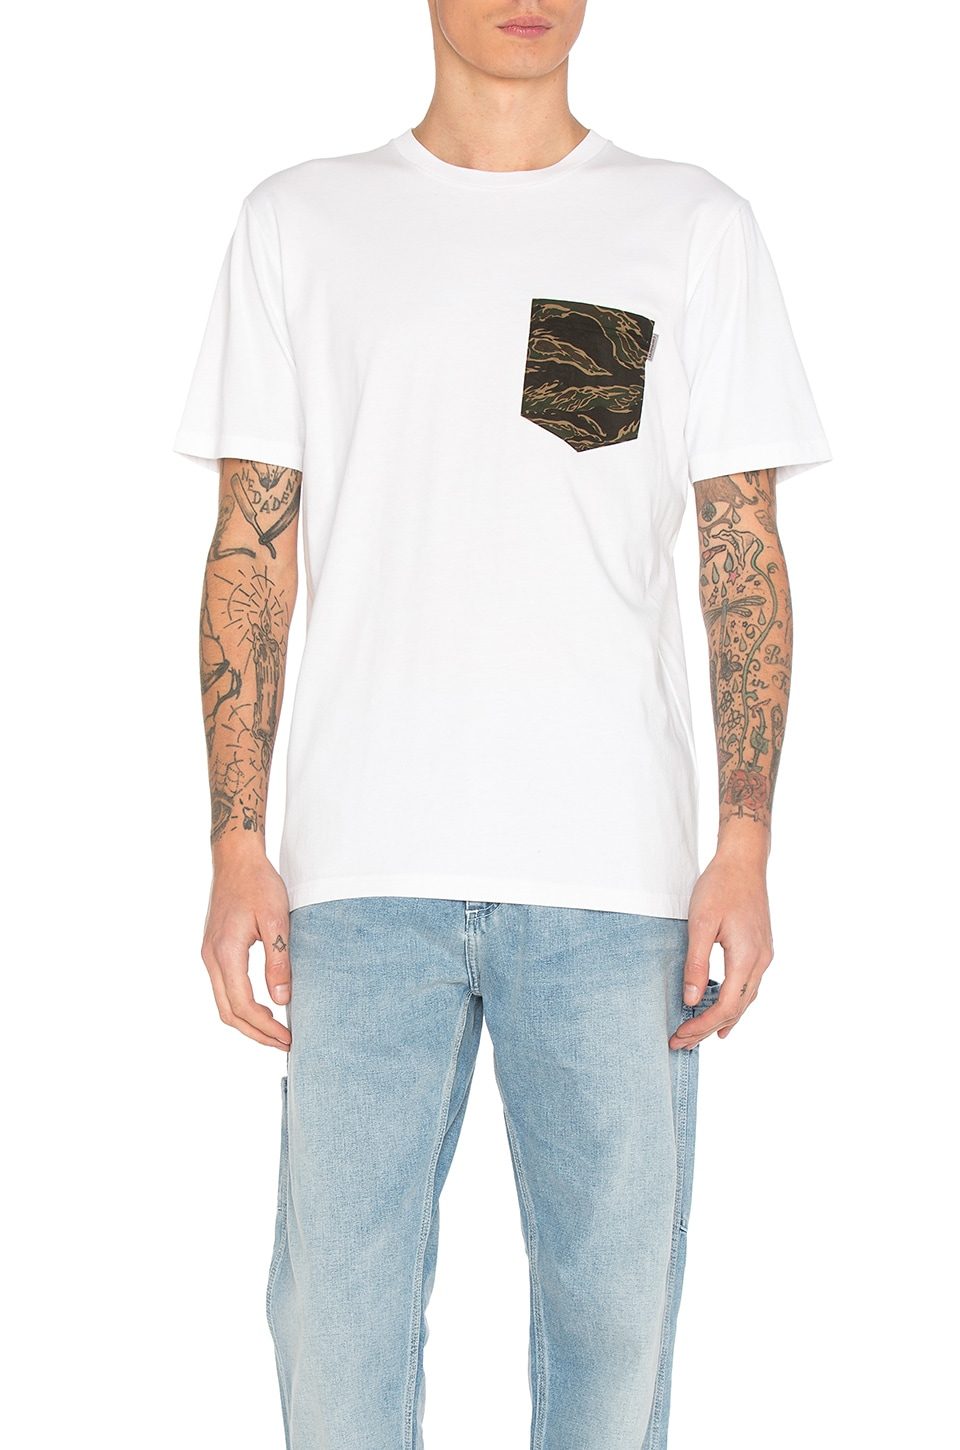 Lester Pocket Tee by Carhartt WIP